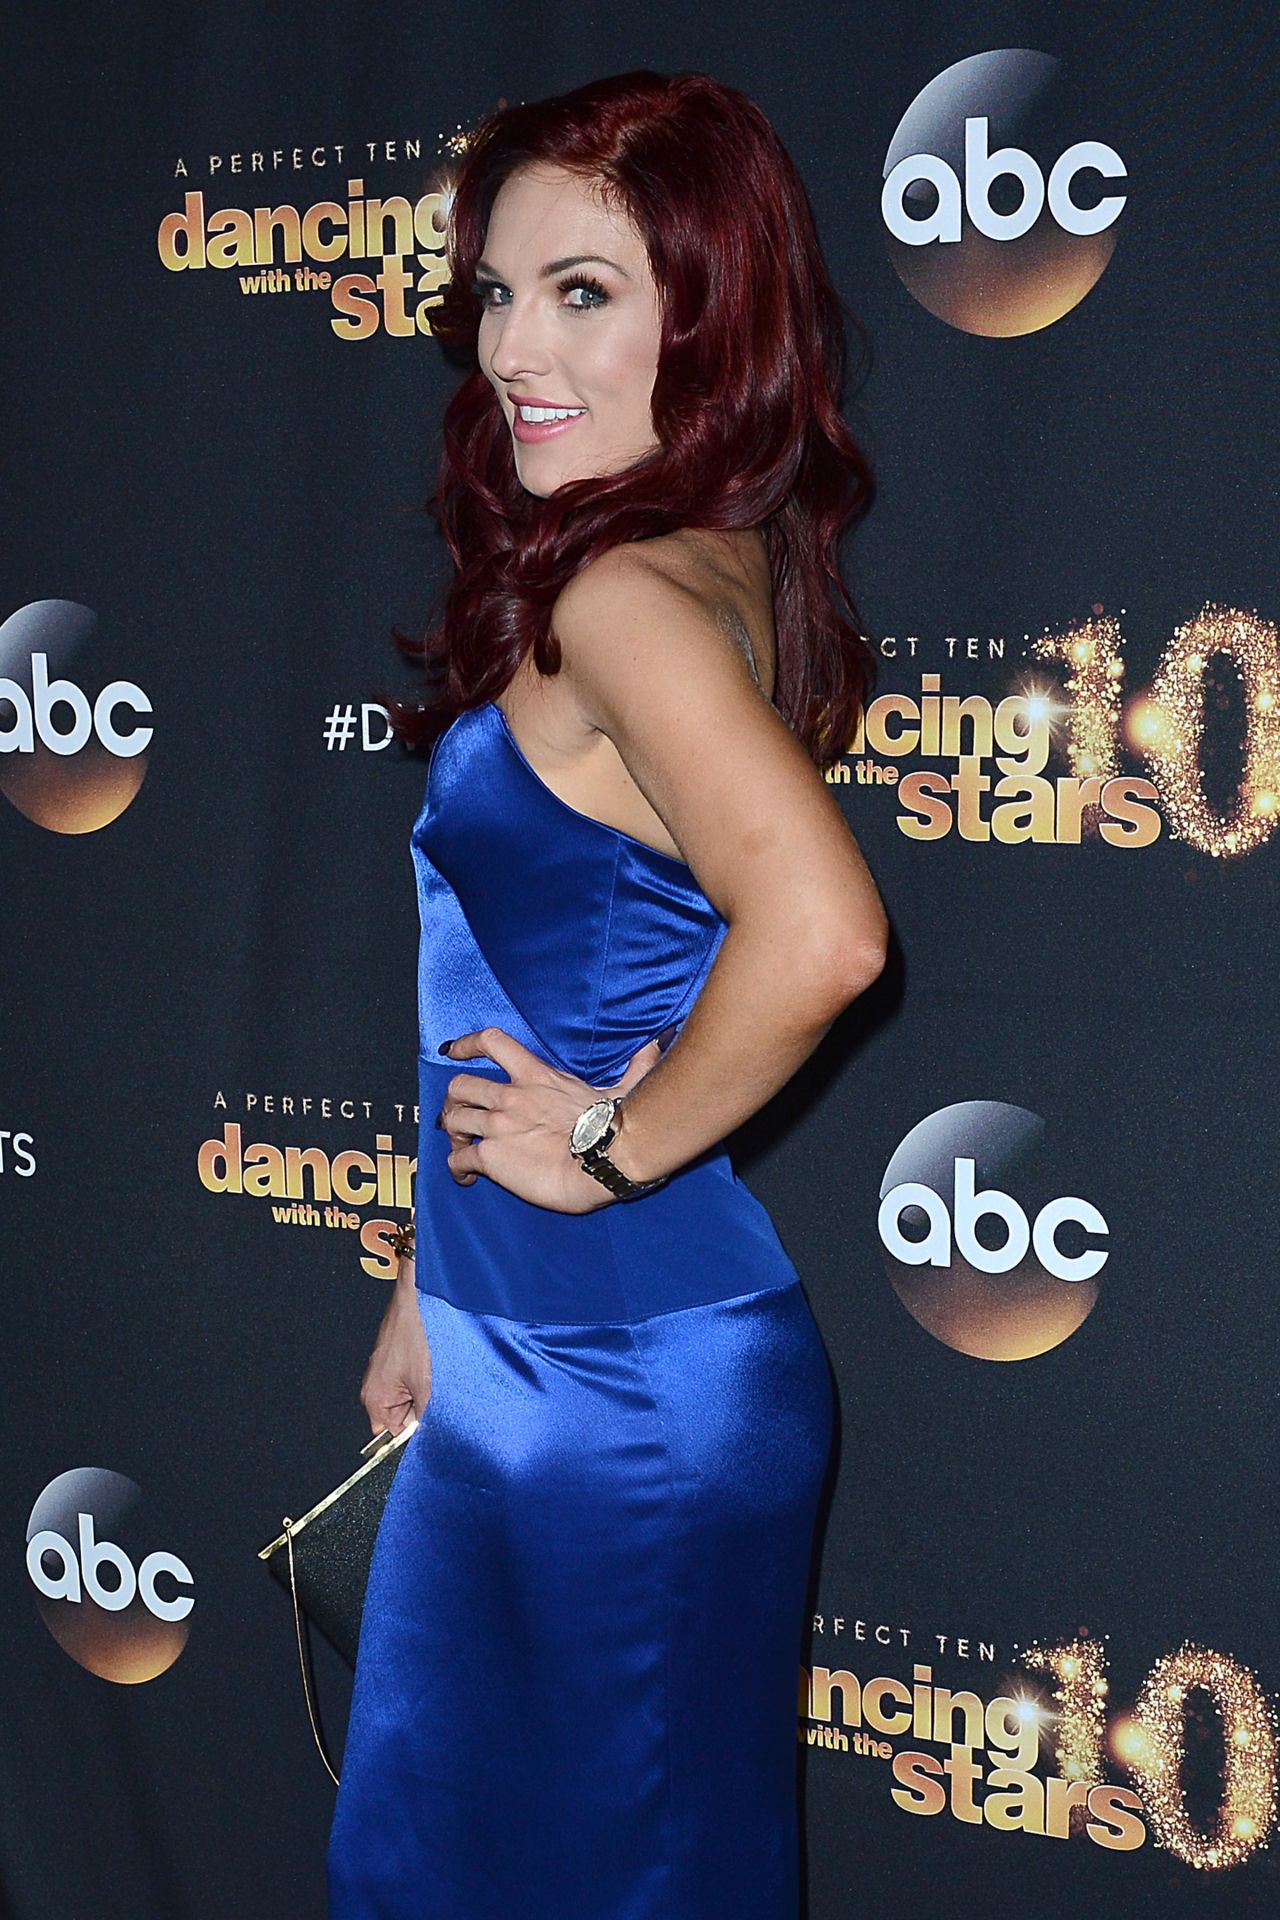 Dancing with the stars celebrity cast